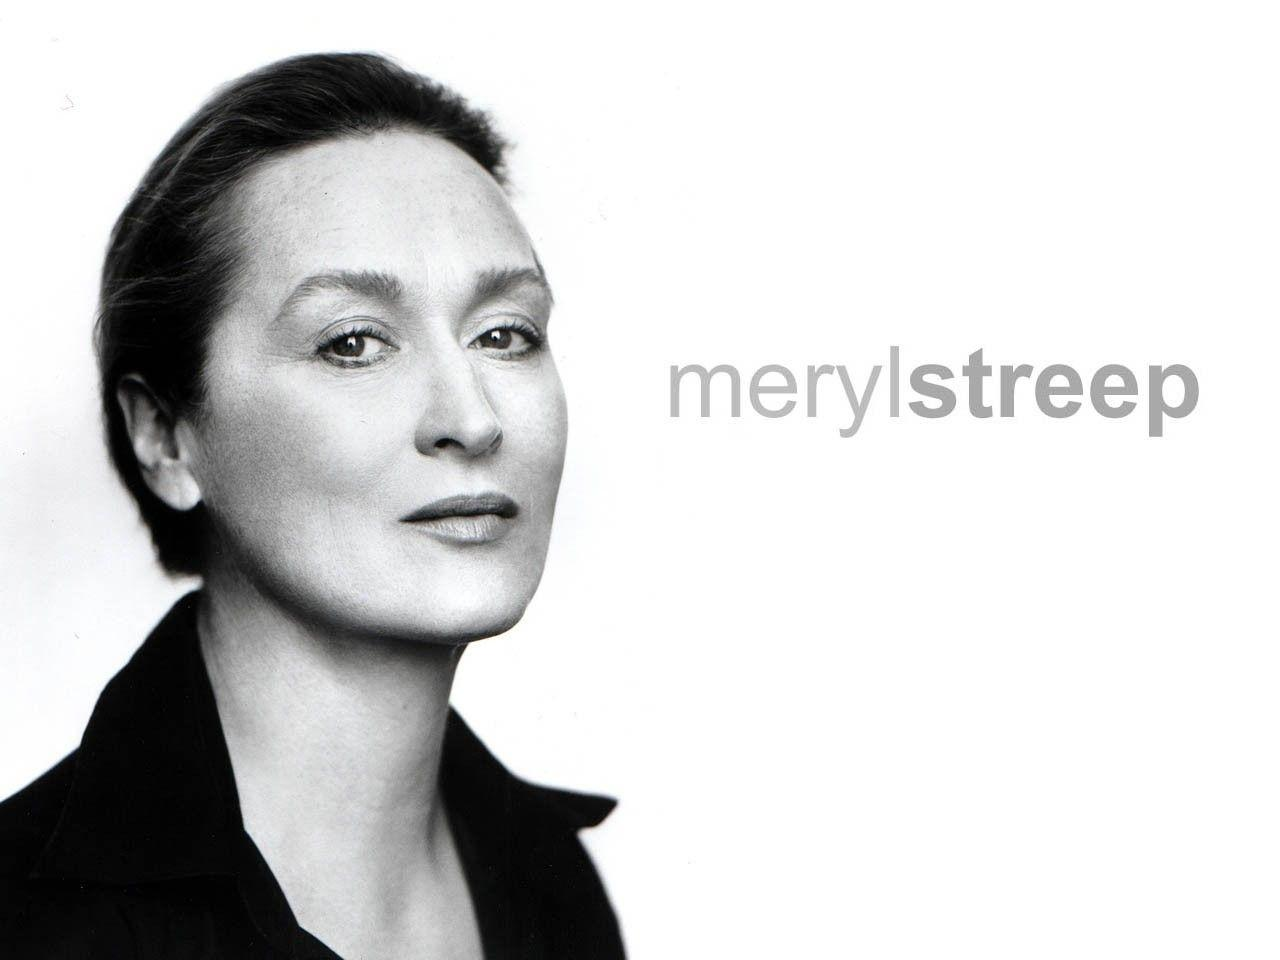 1000+ images about Meryl Streep on Pinterest | Colin firth, Jim ...